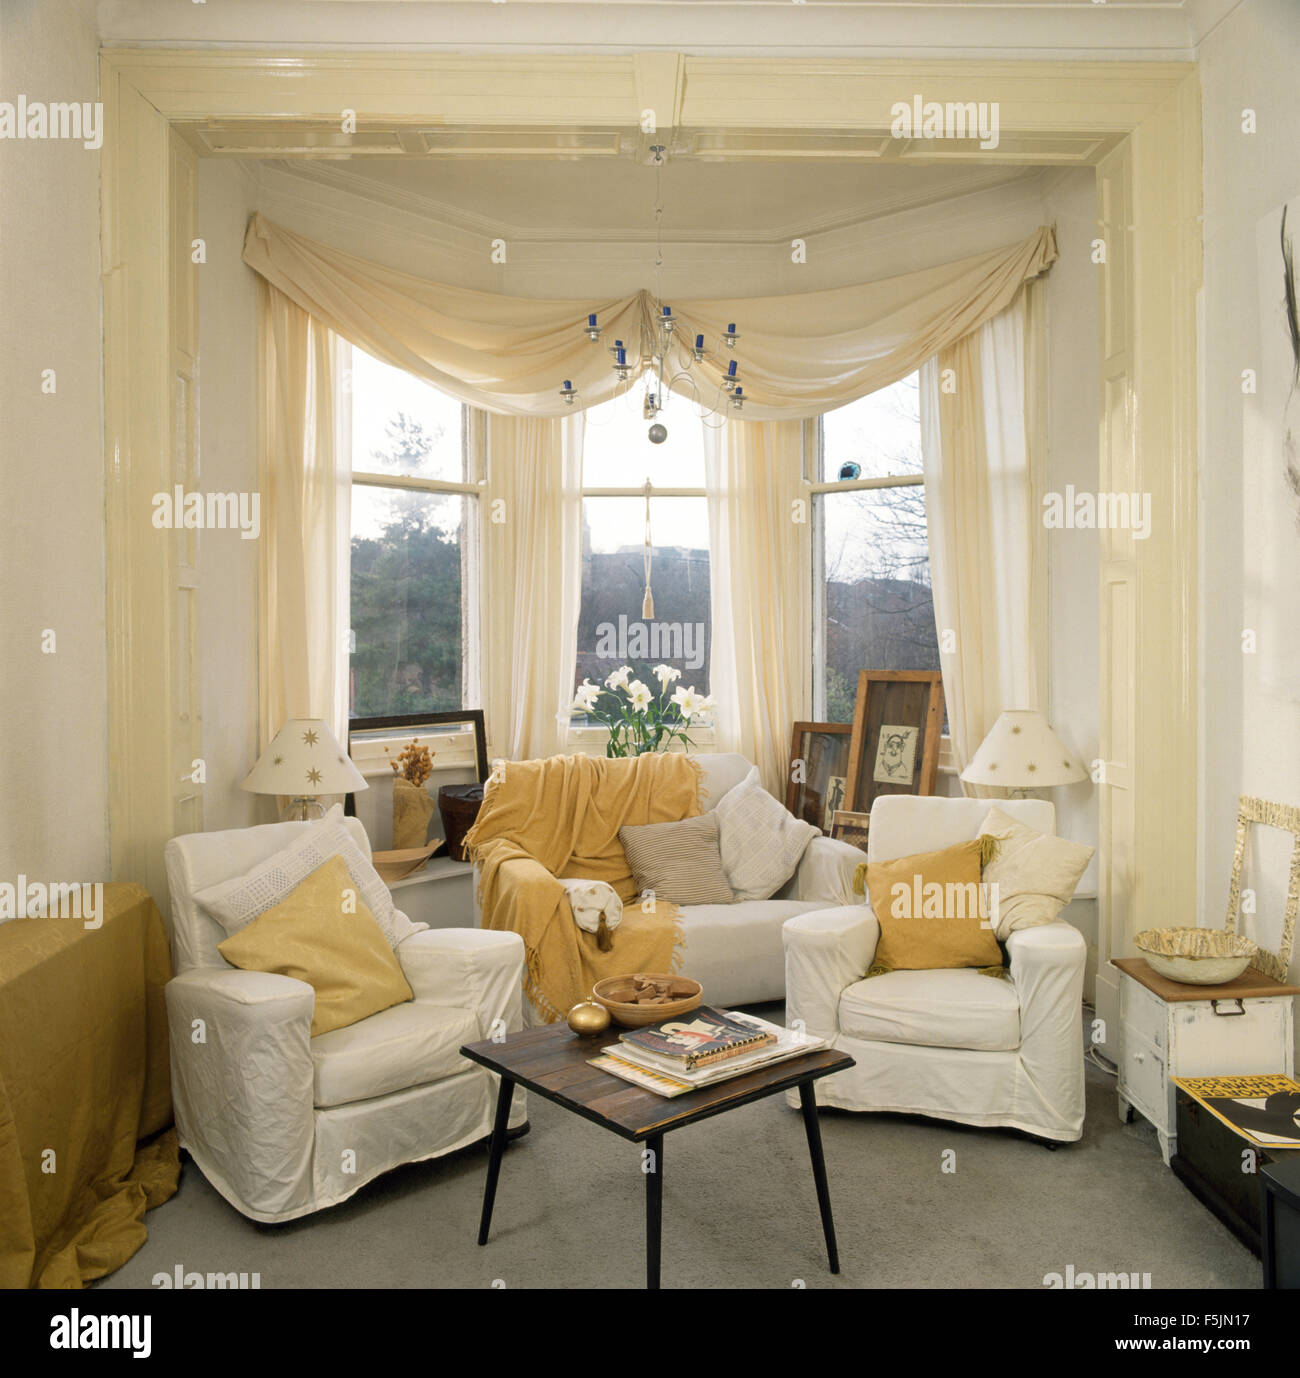 White Swagged Voile Curtains On Bay Window In A Nineties Living Room